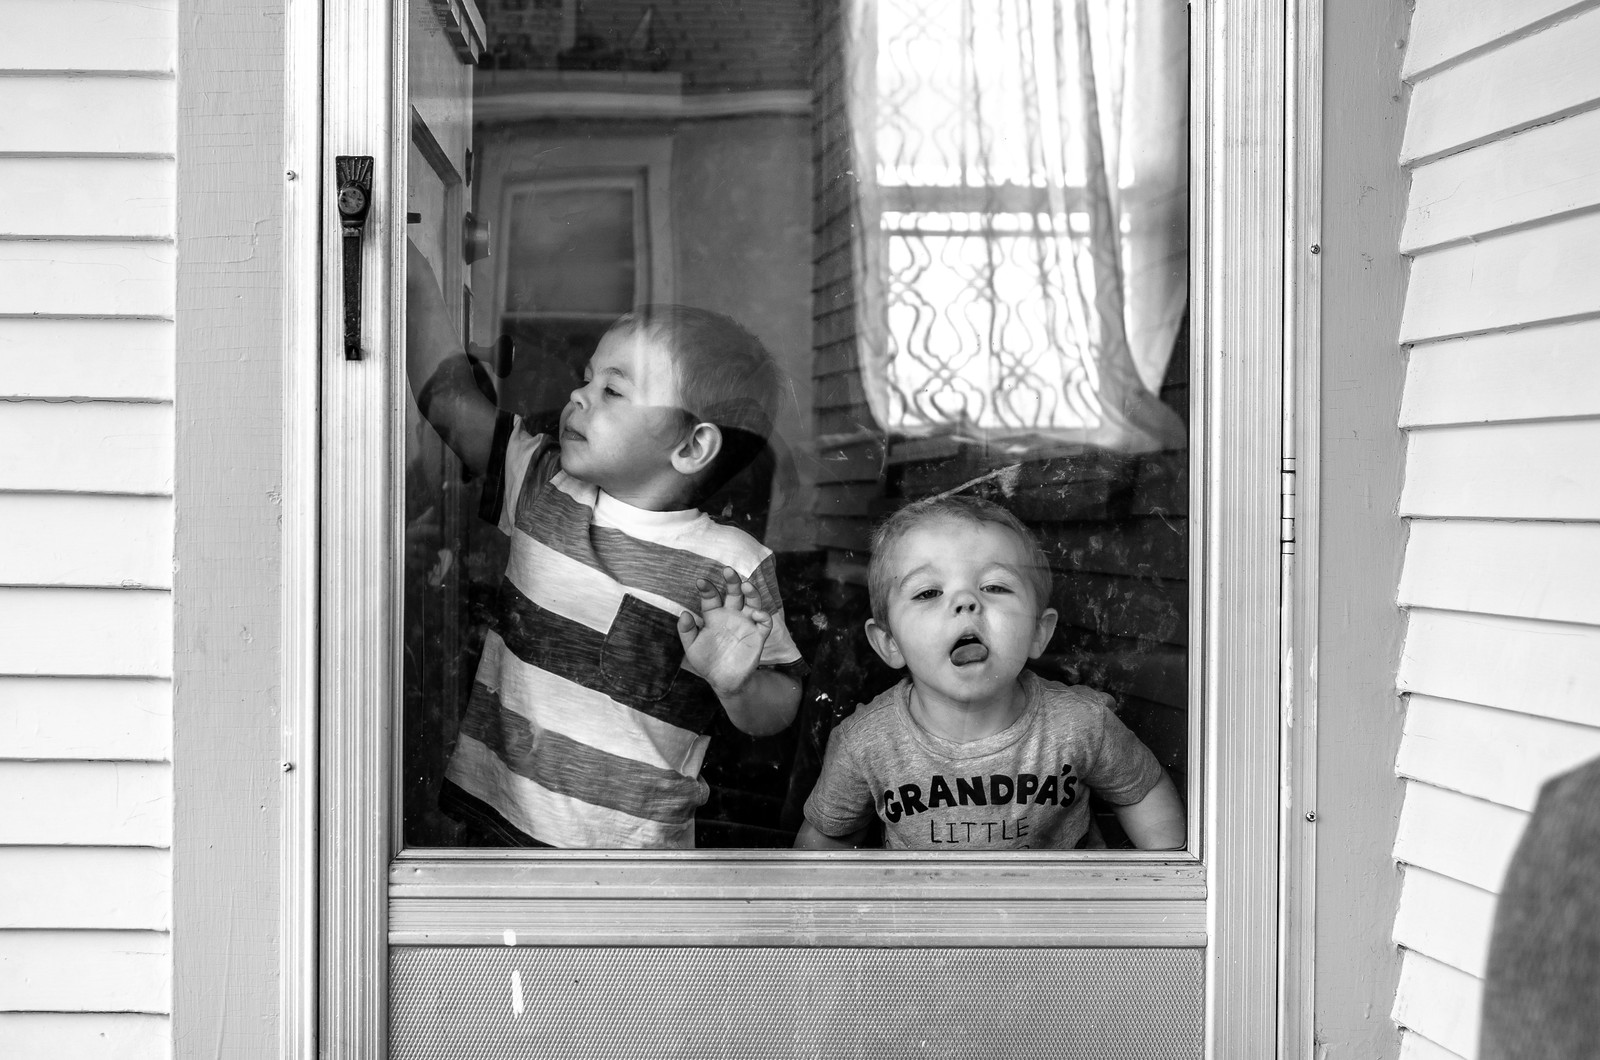 The boys at the door